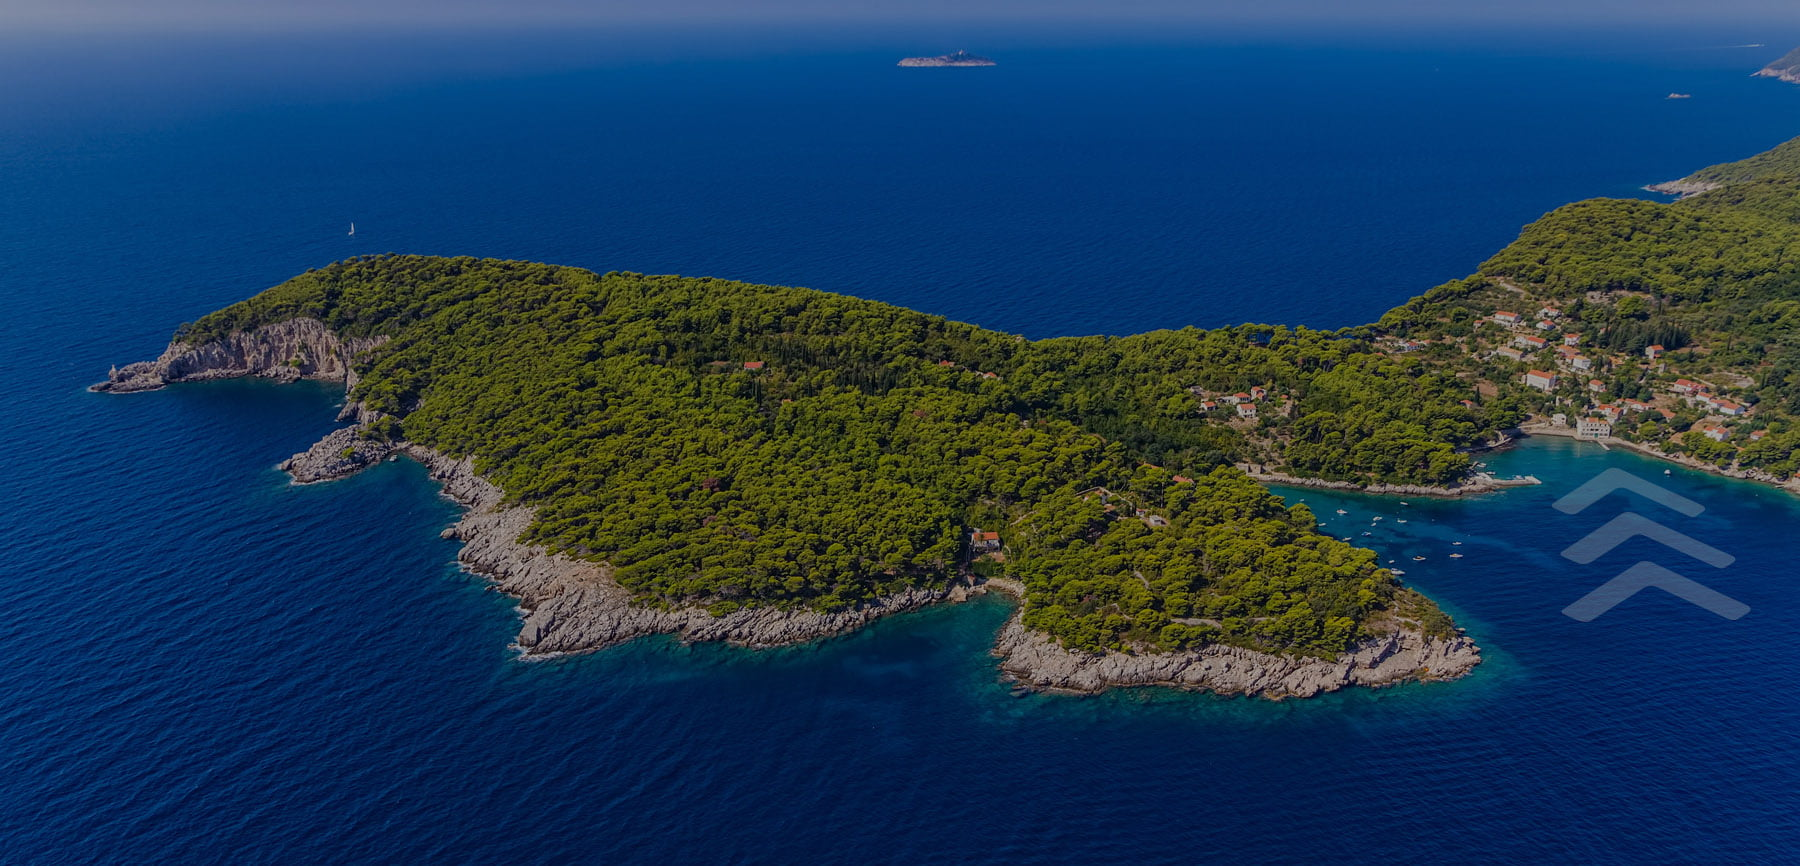 A photo of Kolocep Island, one of the Elaphiti Islands off the coast of DUbrovnik. An arrow is pointing at the location where the hotel is located.